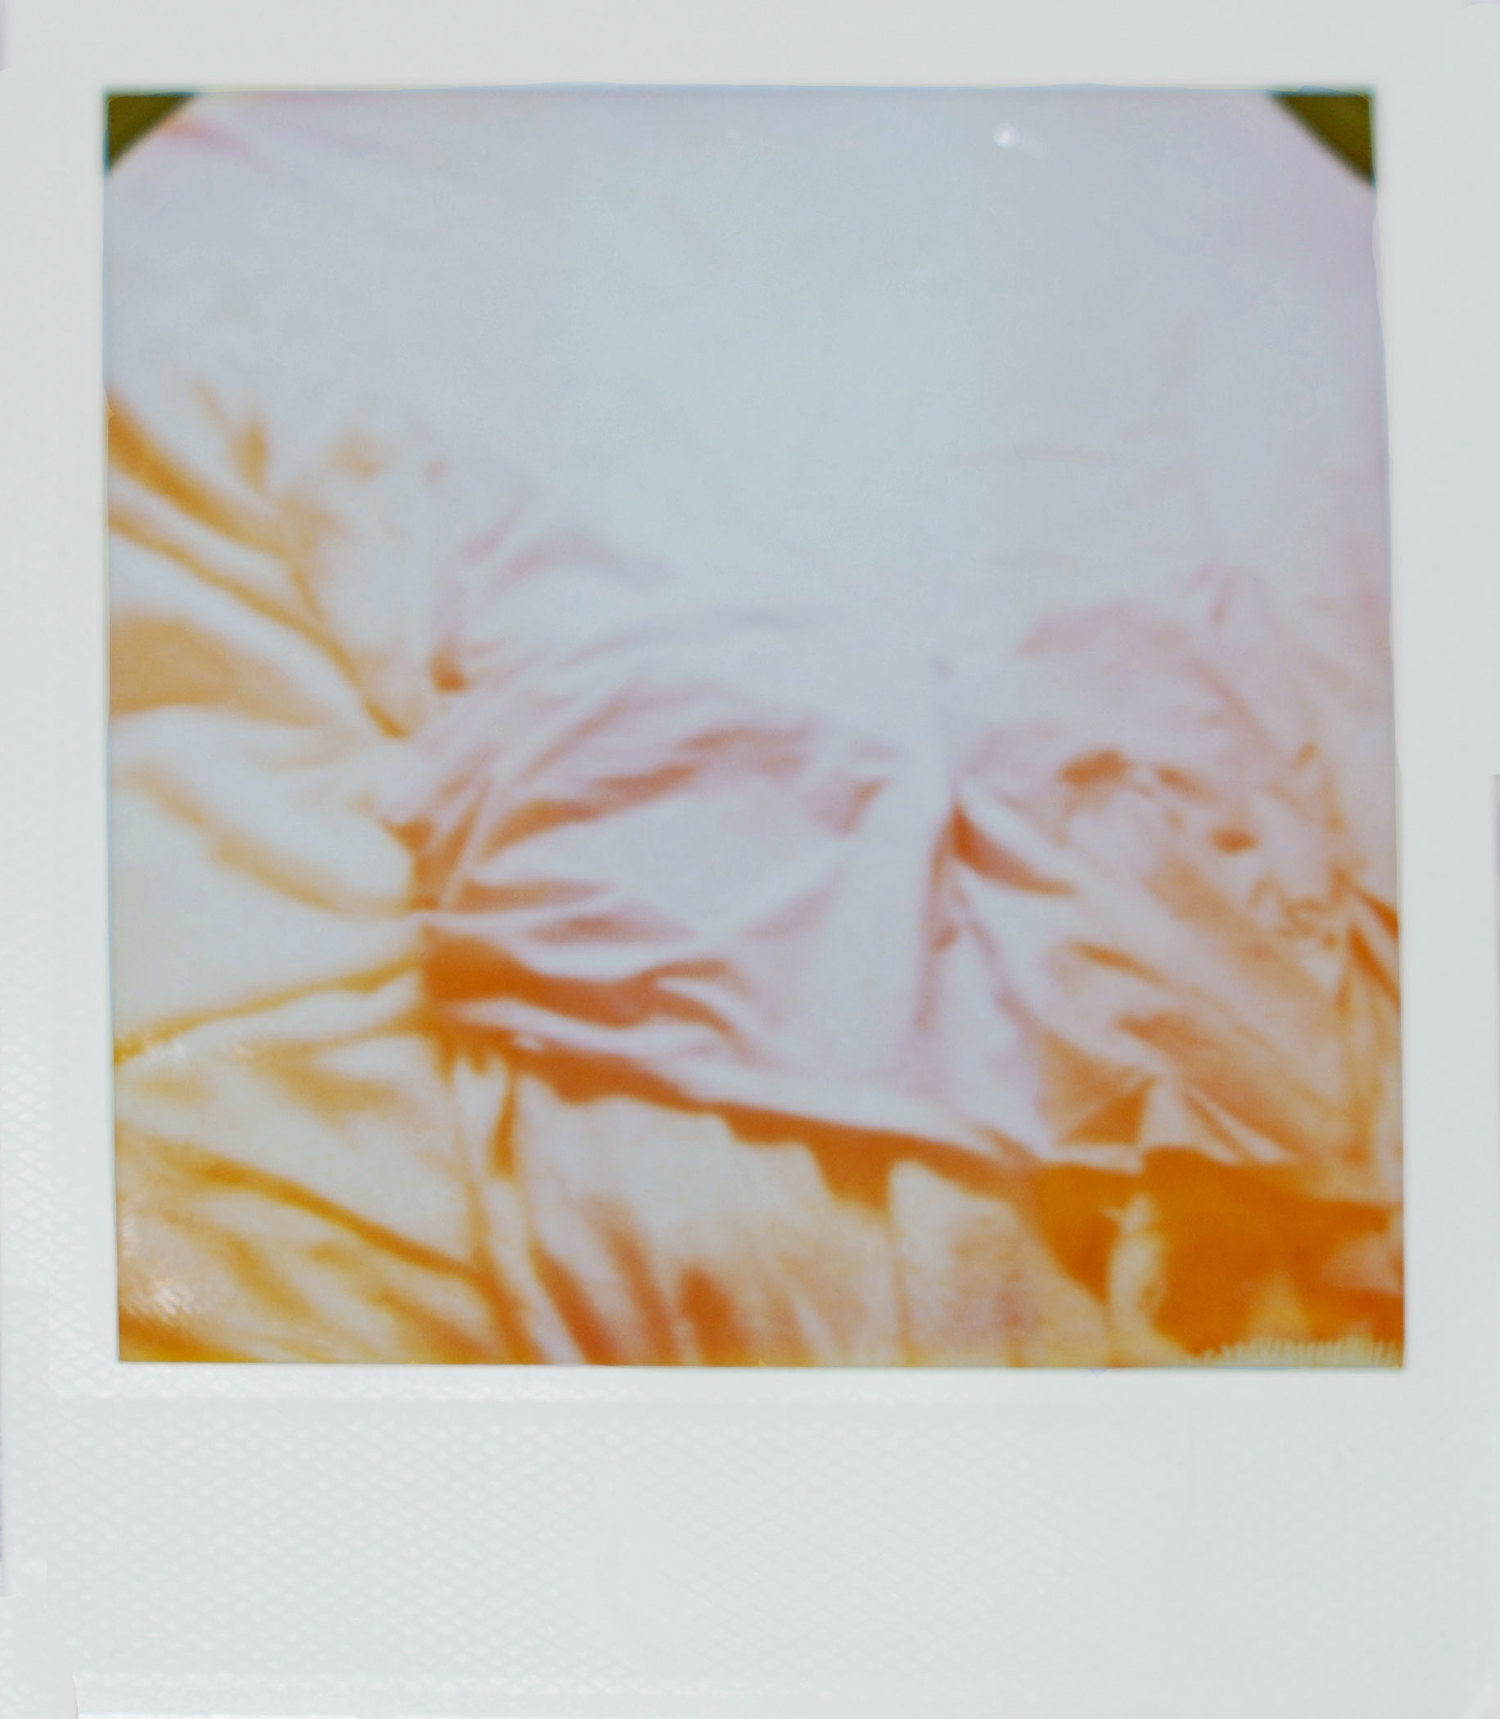 bed-sheets-polaroid.jpg